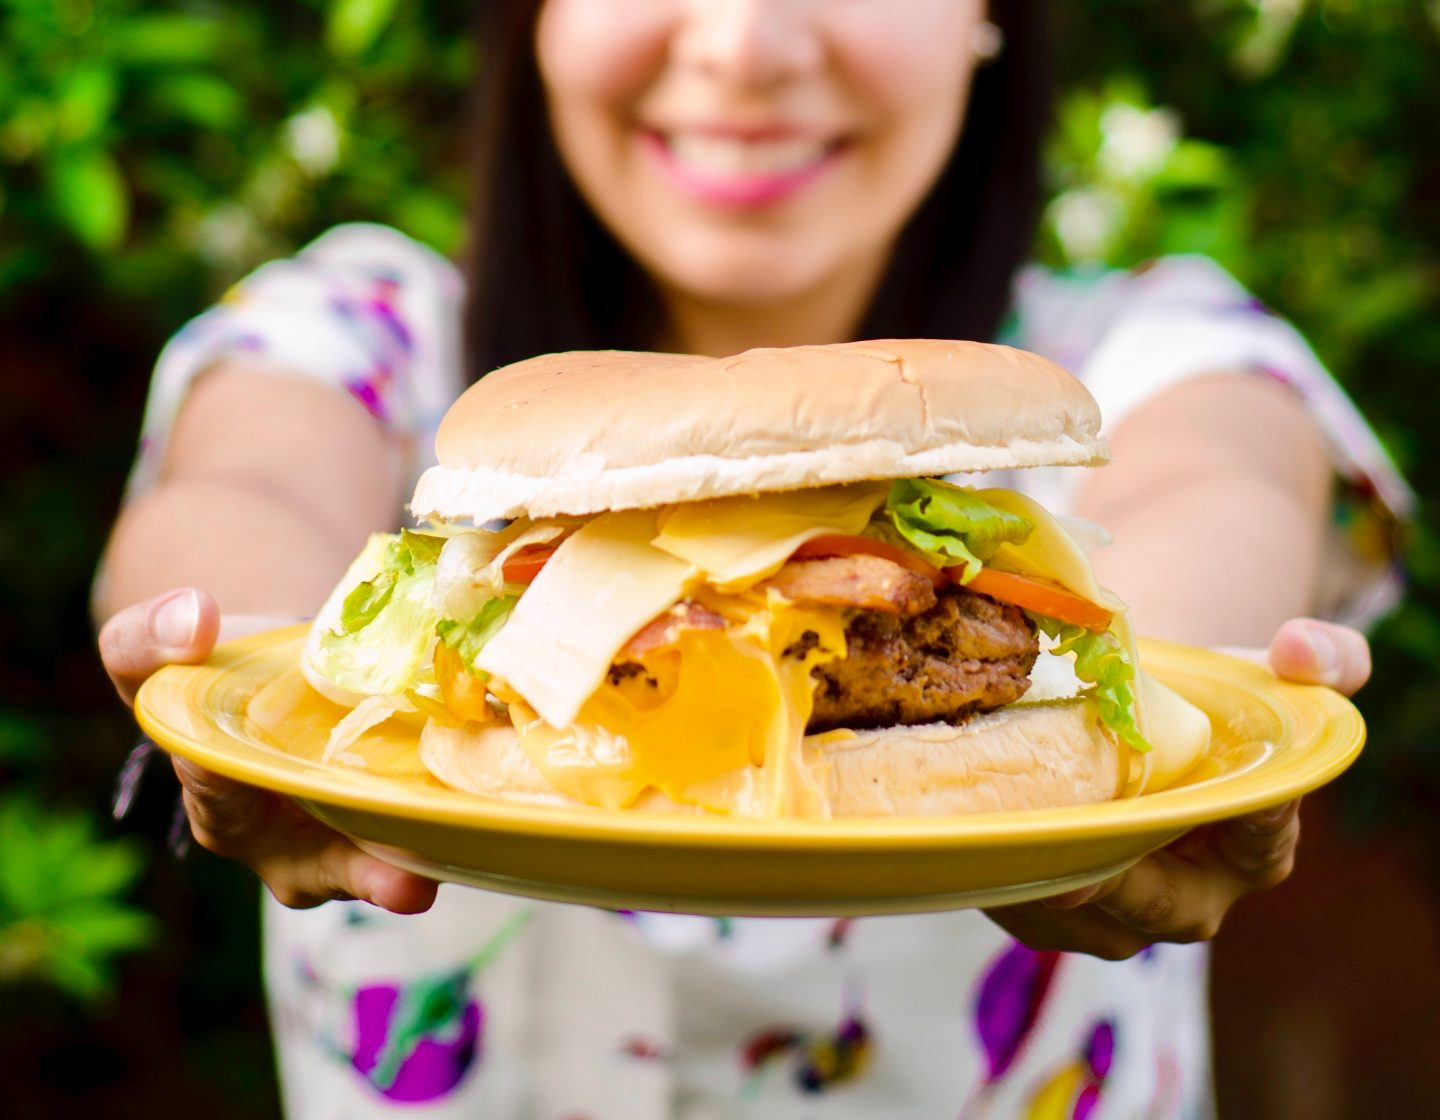 woman serving hamburger cheeseburger smiling